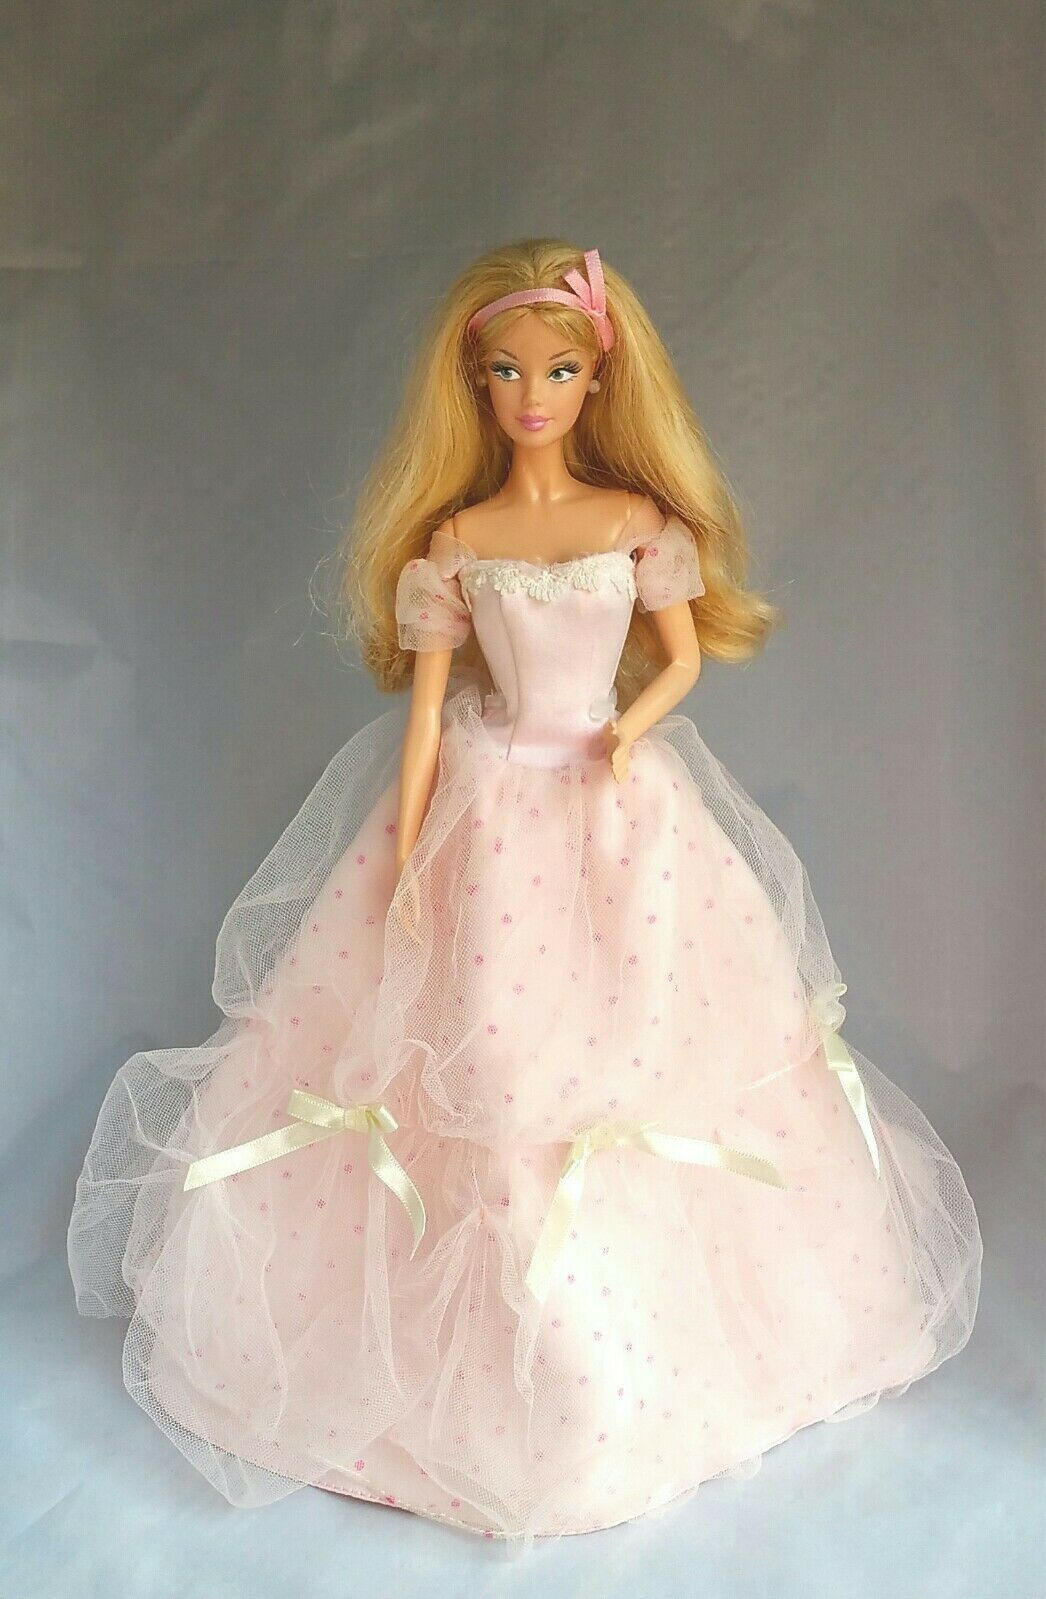 Extremely Rare 2013 Birthday Wishes Collector  Barbie Doll Doll Doll Original 4faabe